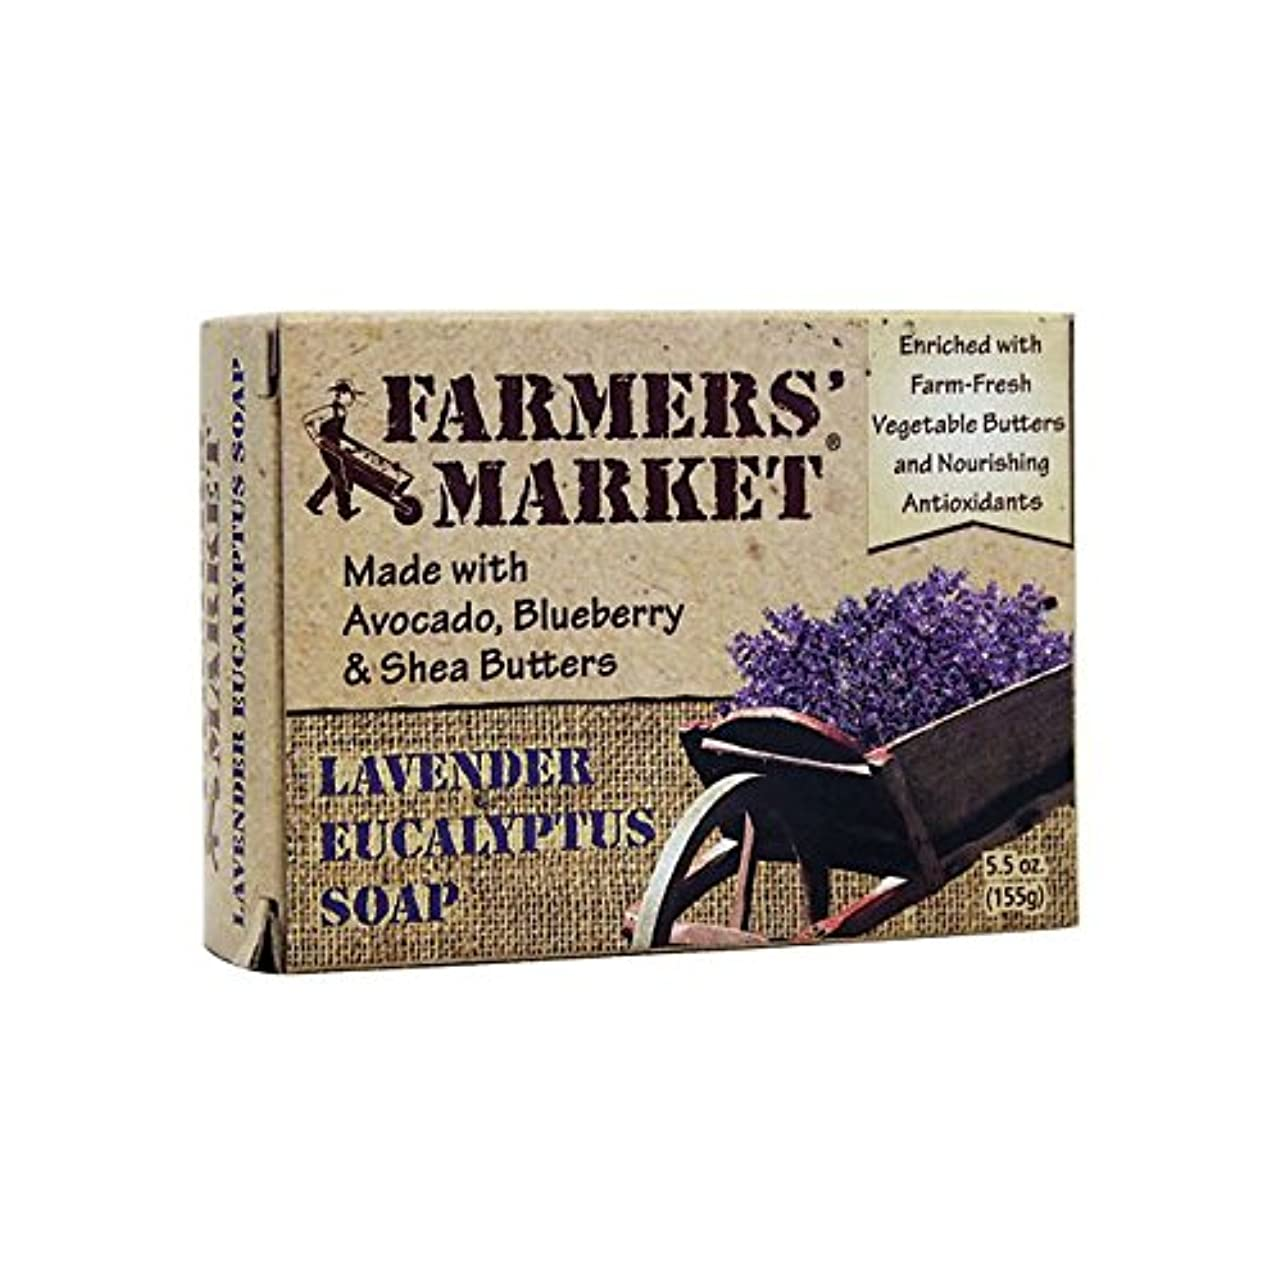 言及する過敏な息苦しいFarmers' Market Soaps, Lavender Eucalyptus Soap, 5.5 oz (155 g) (Discontinued Item)